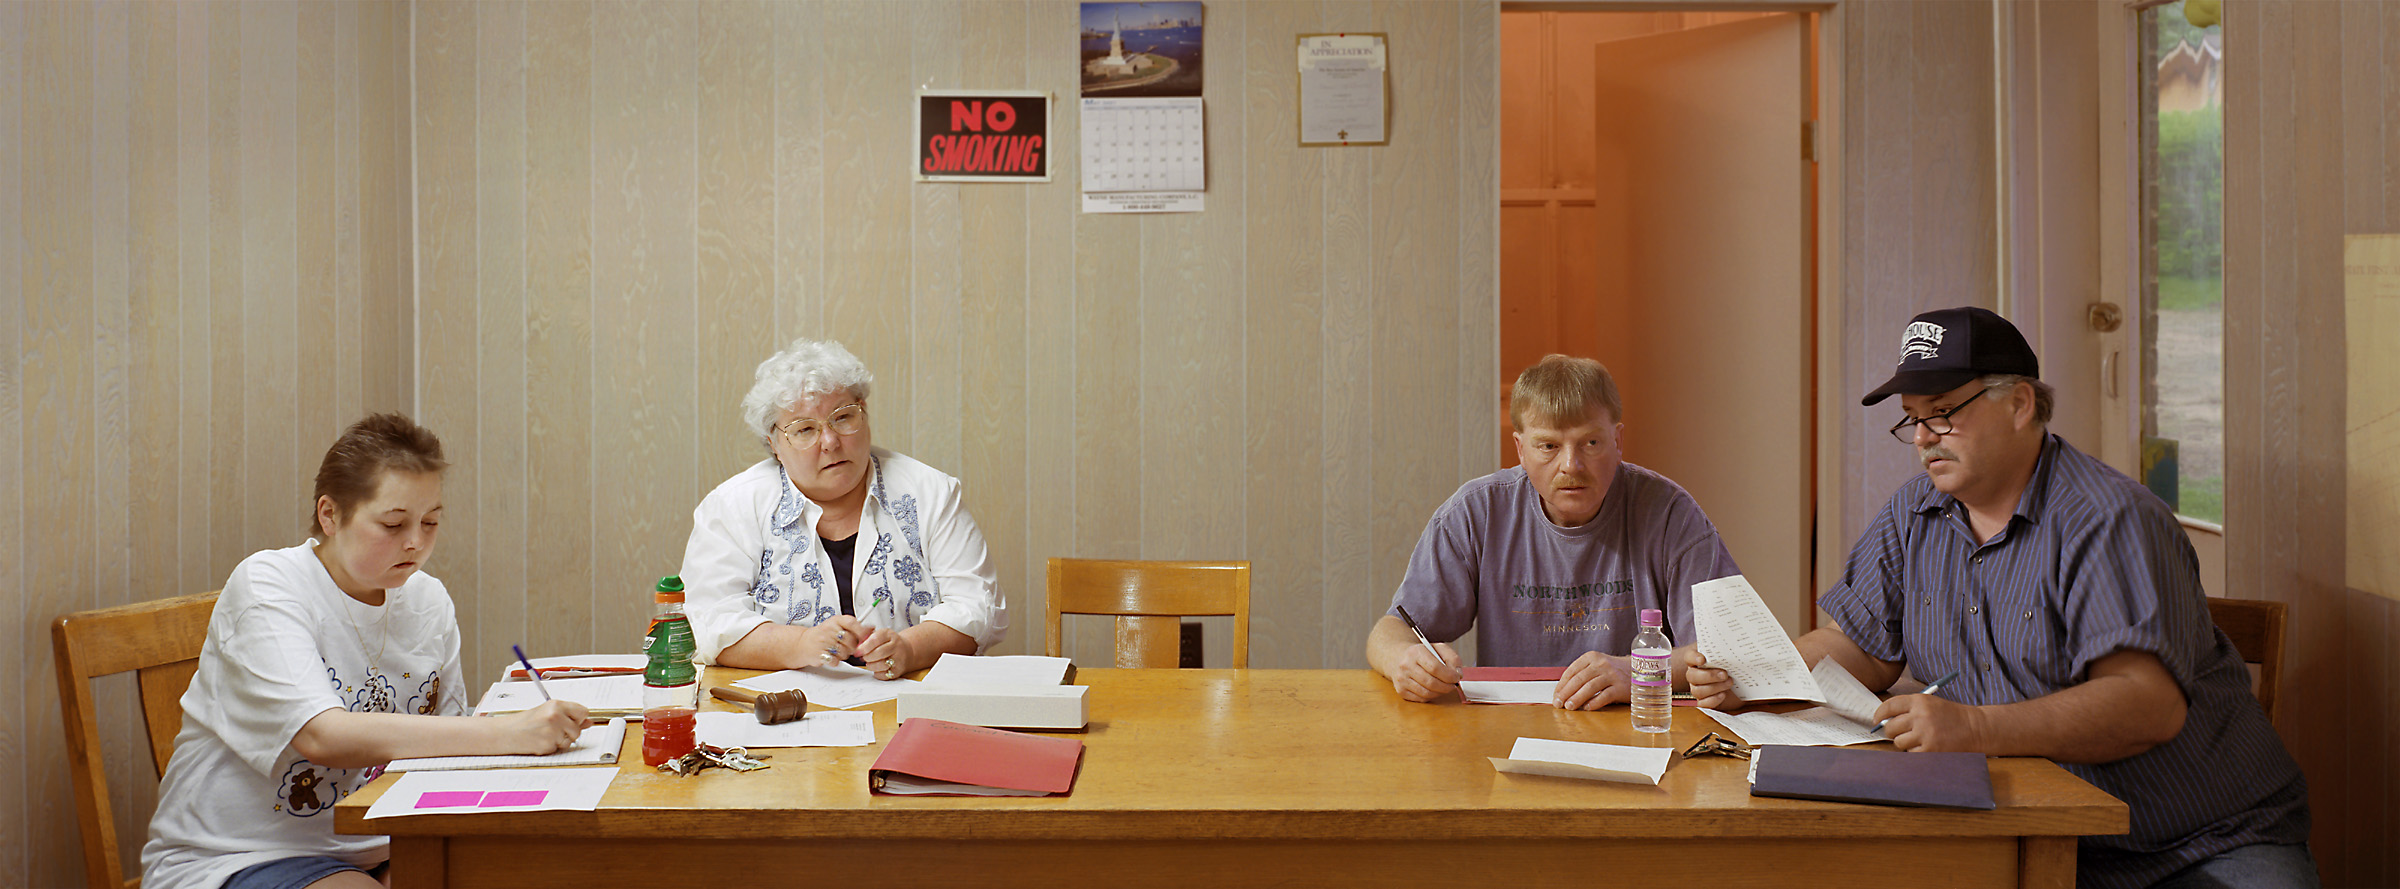 Calumet, Minnesota (population 383) City Council, May 15, 2001 (L to R): Julie Childs (City Clerk), Connie Swanson (Mayor), John Anderson, Daniel Strand, 2001.